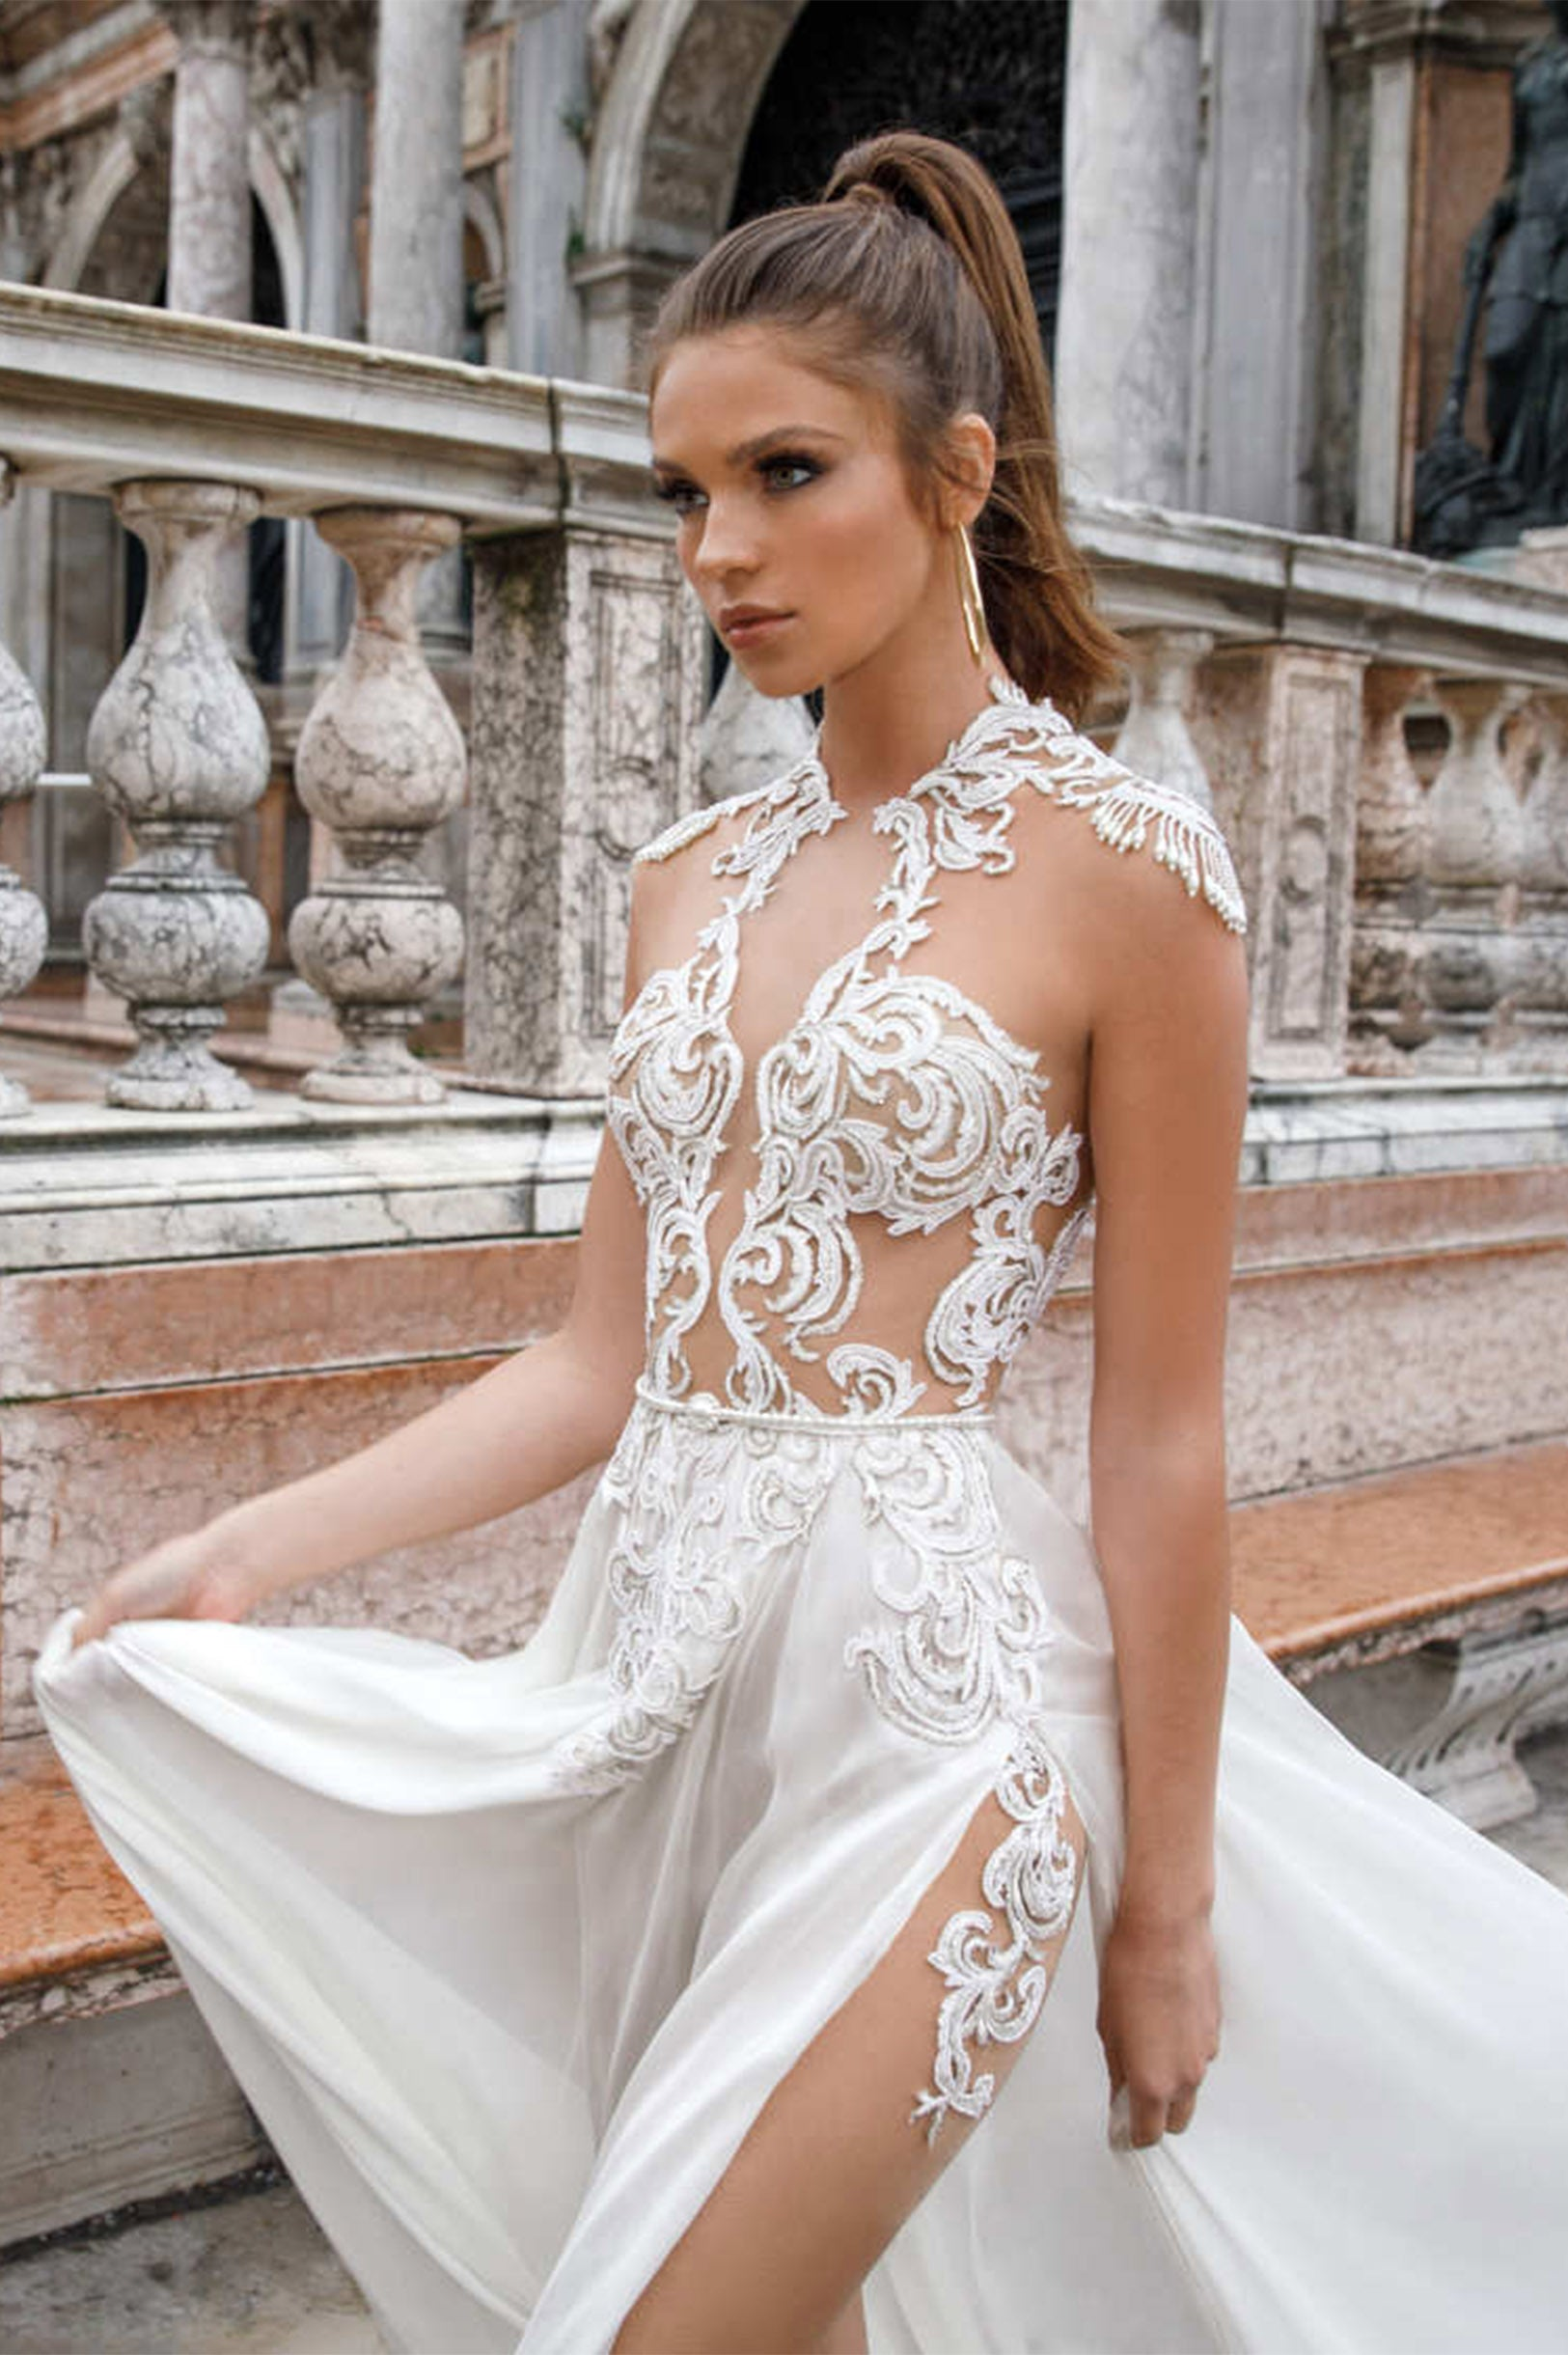 Surprise Jewel Lace Wedding Gown The Lovely Find